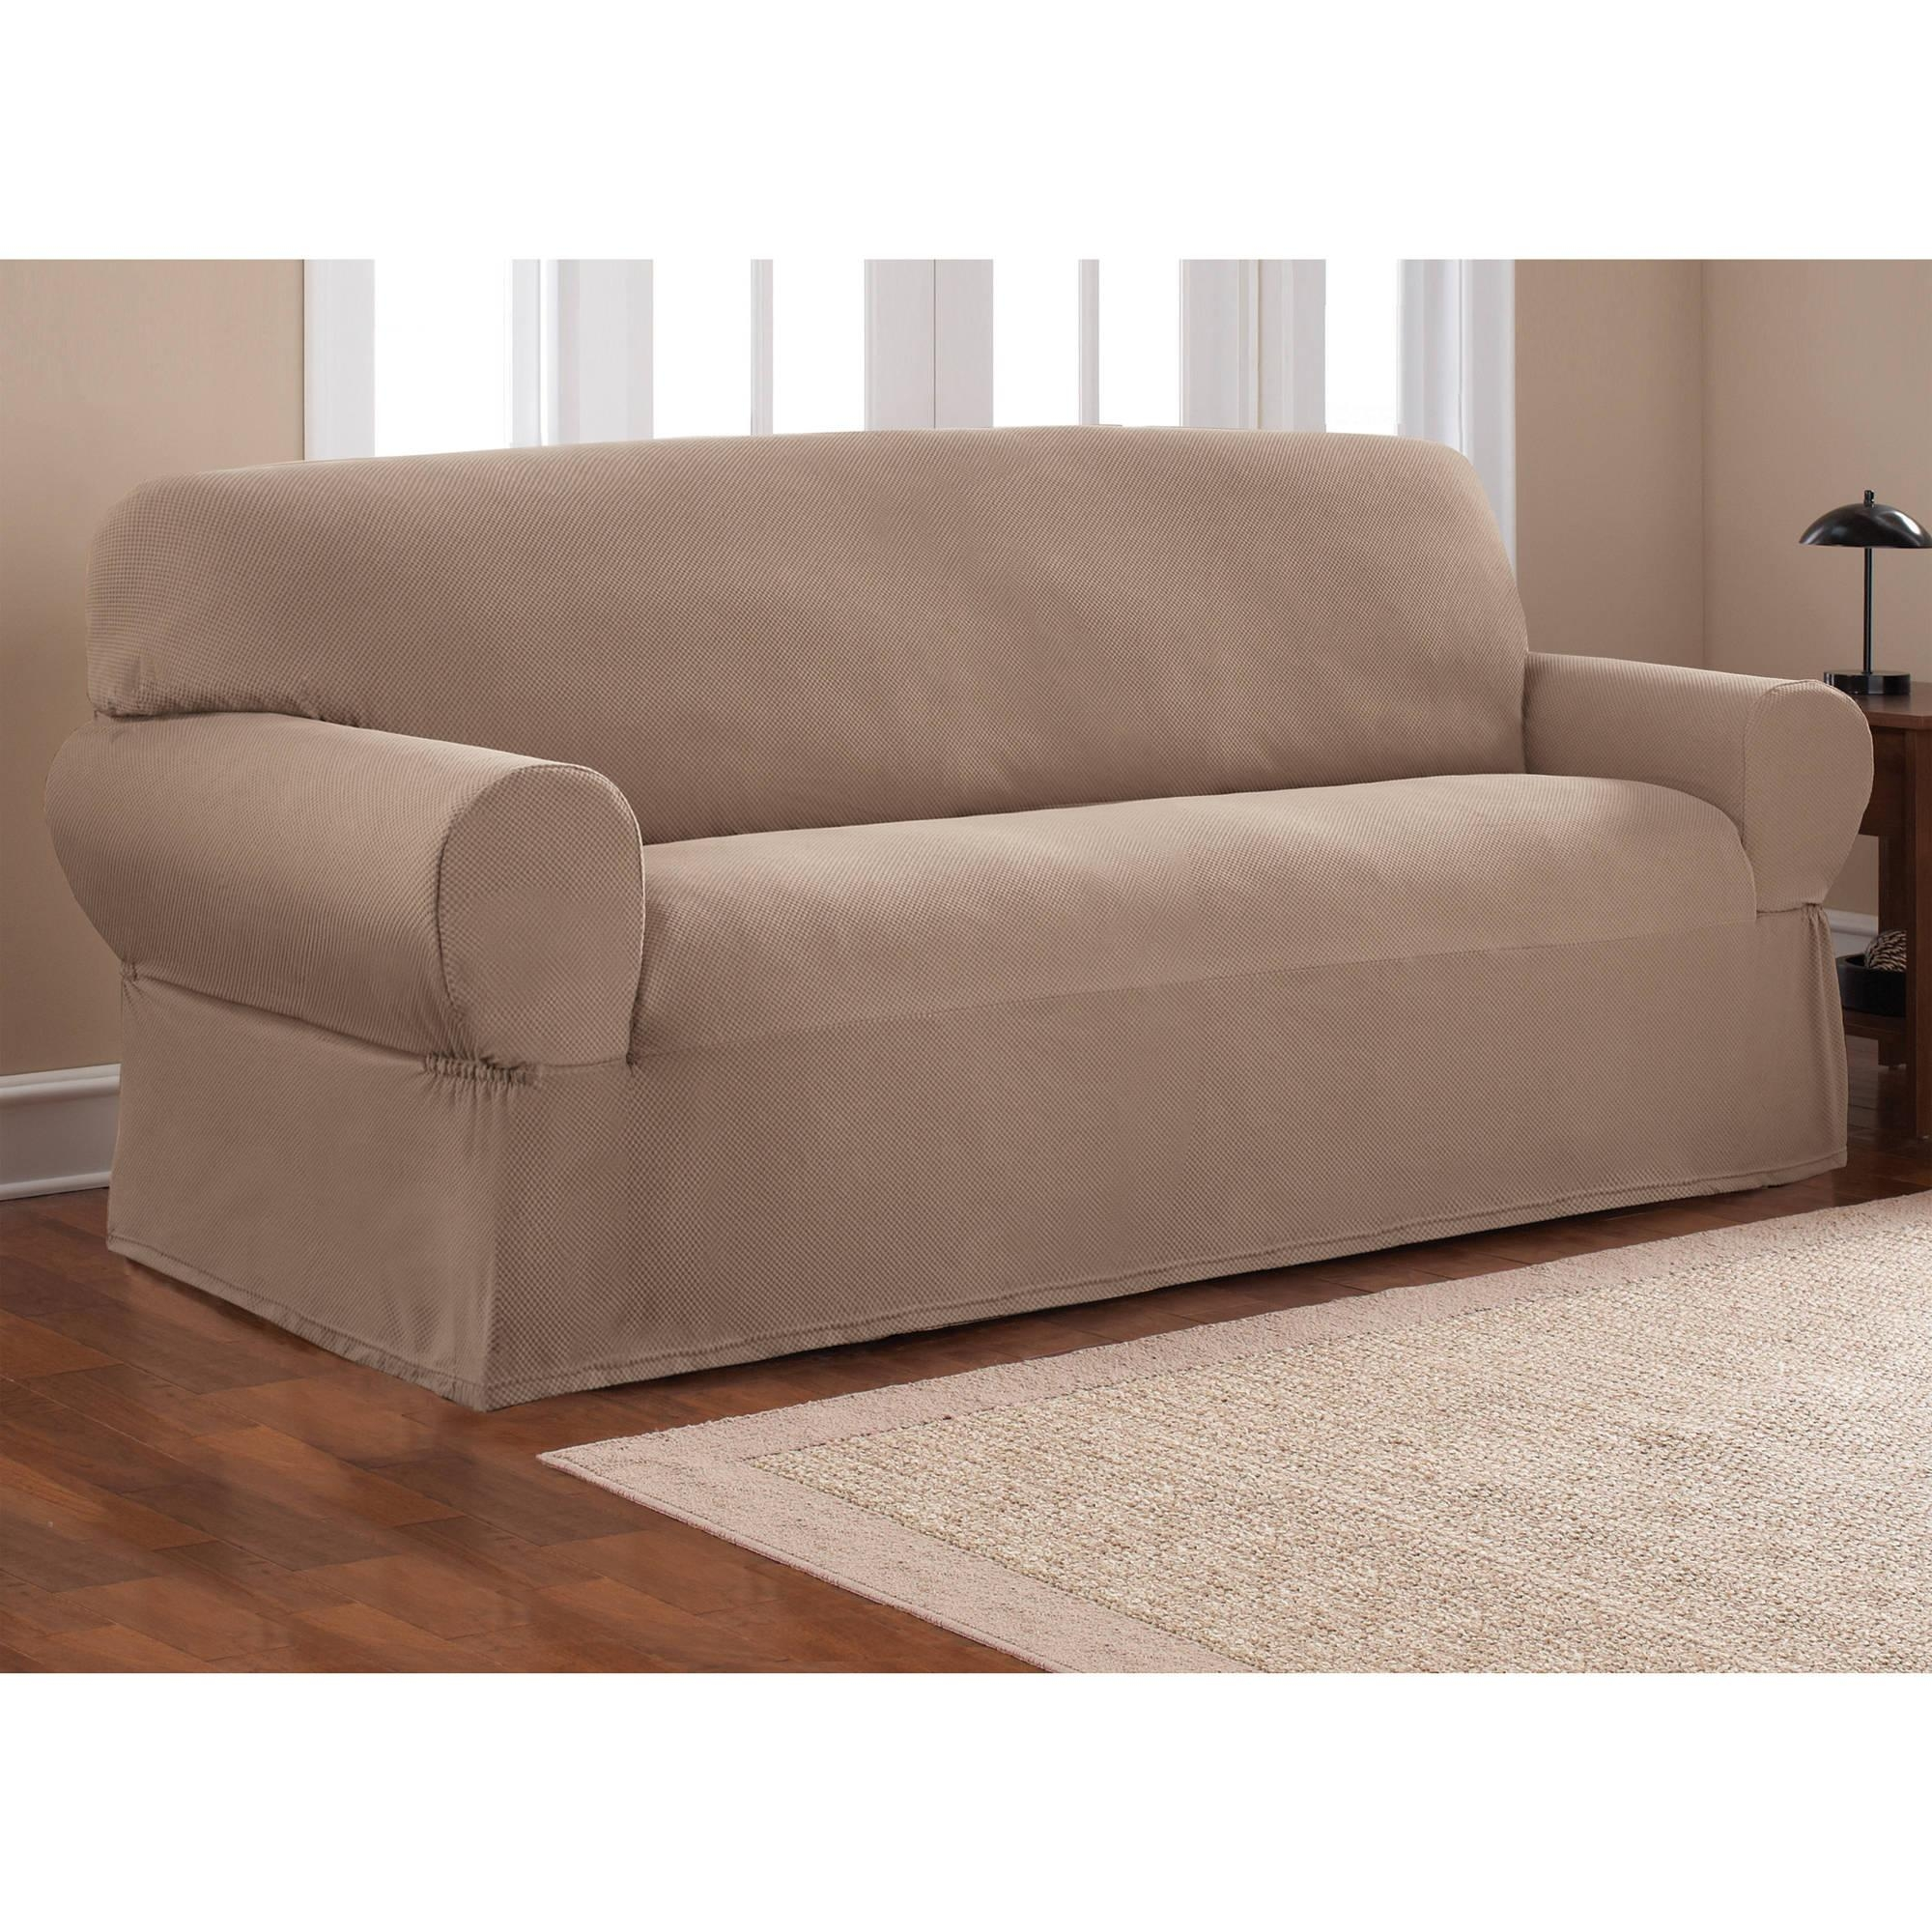 Furniture: Update Your Living Room With Best Sofa Slipcover Design Pertaining To Canvas Slipcover Sofas (Image 8 of 20)